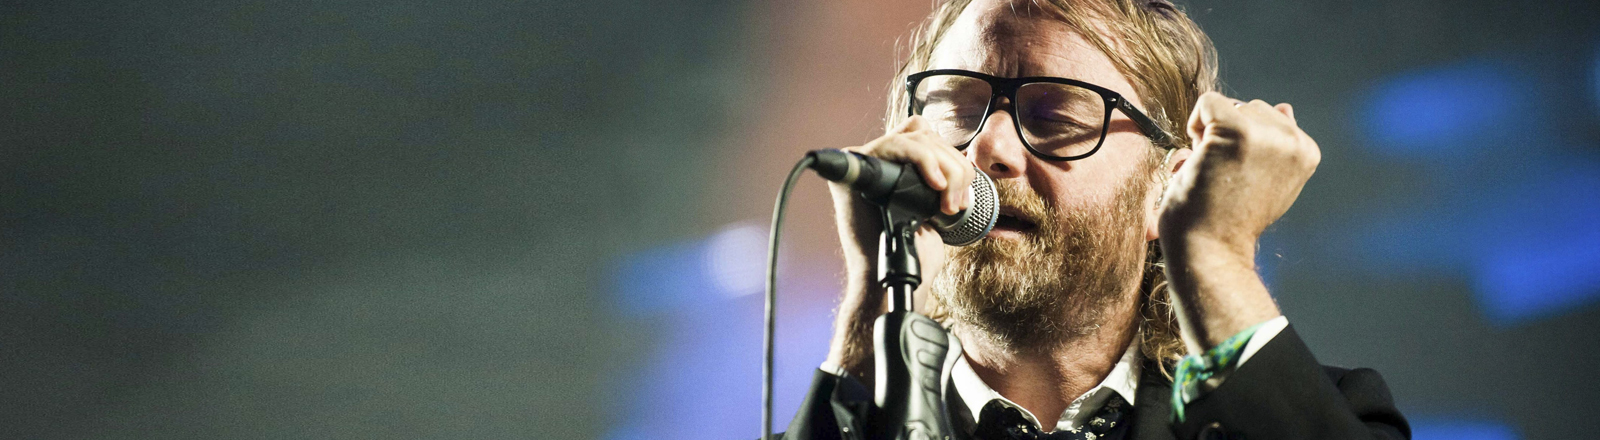 att Berninger, singer of US alternative rock band The National, performs during a concert at the SOS 4.8 Festival in Murcia, southeastern Spain, late 02 May 2015.